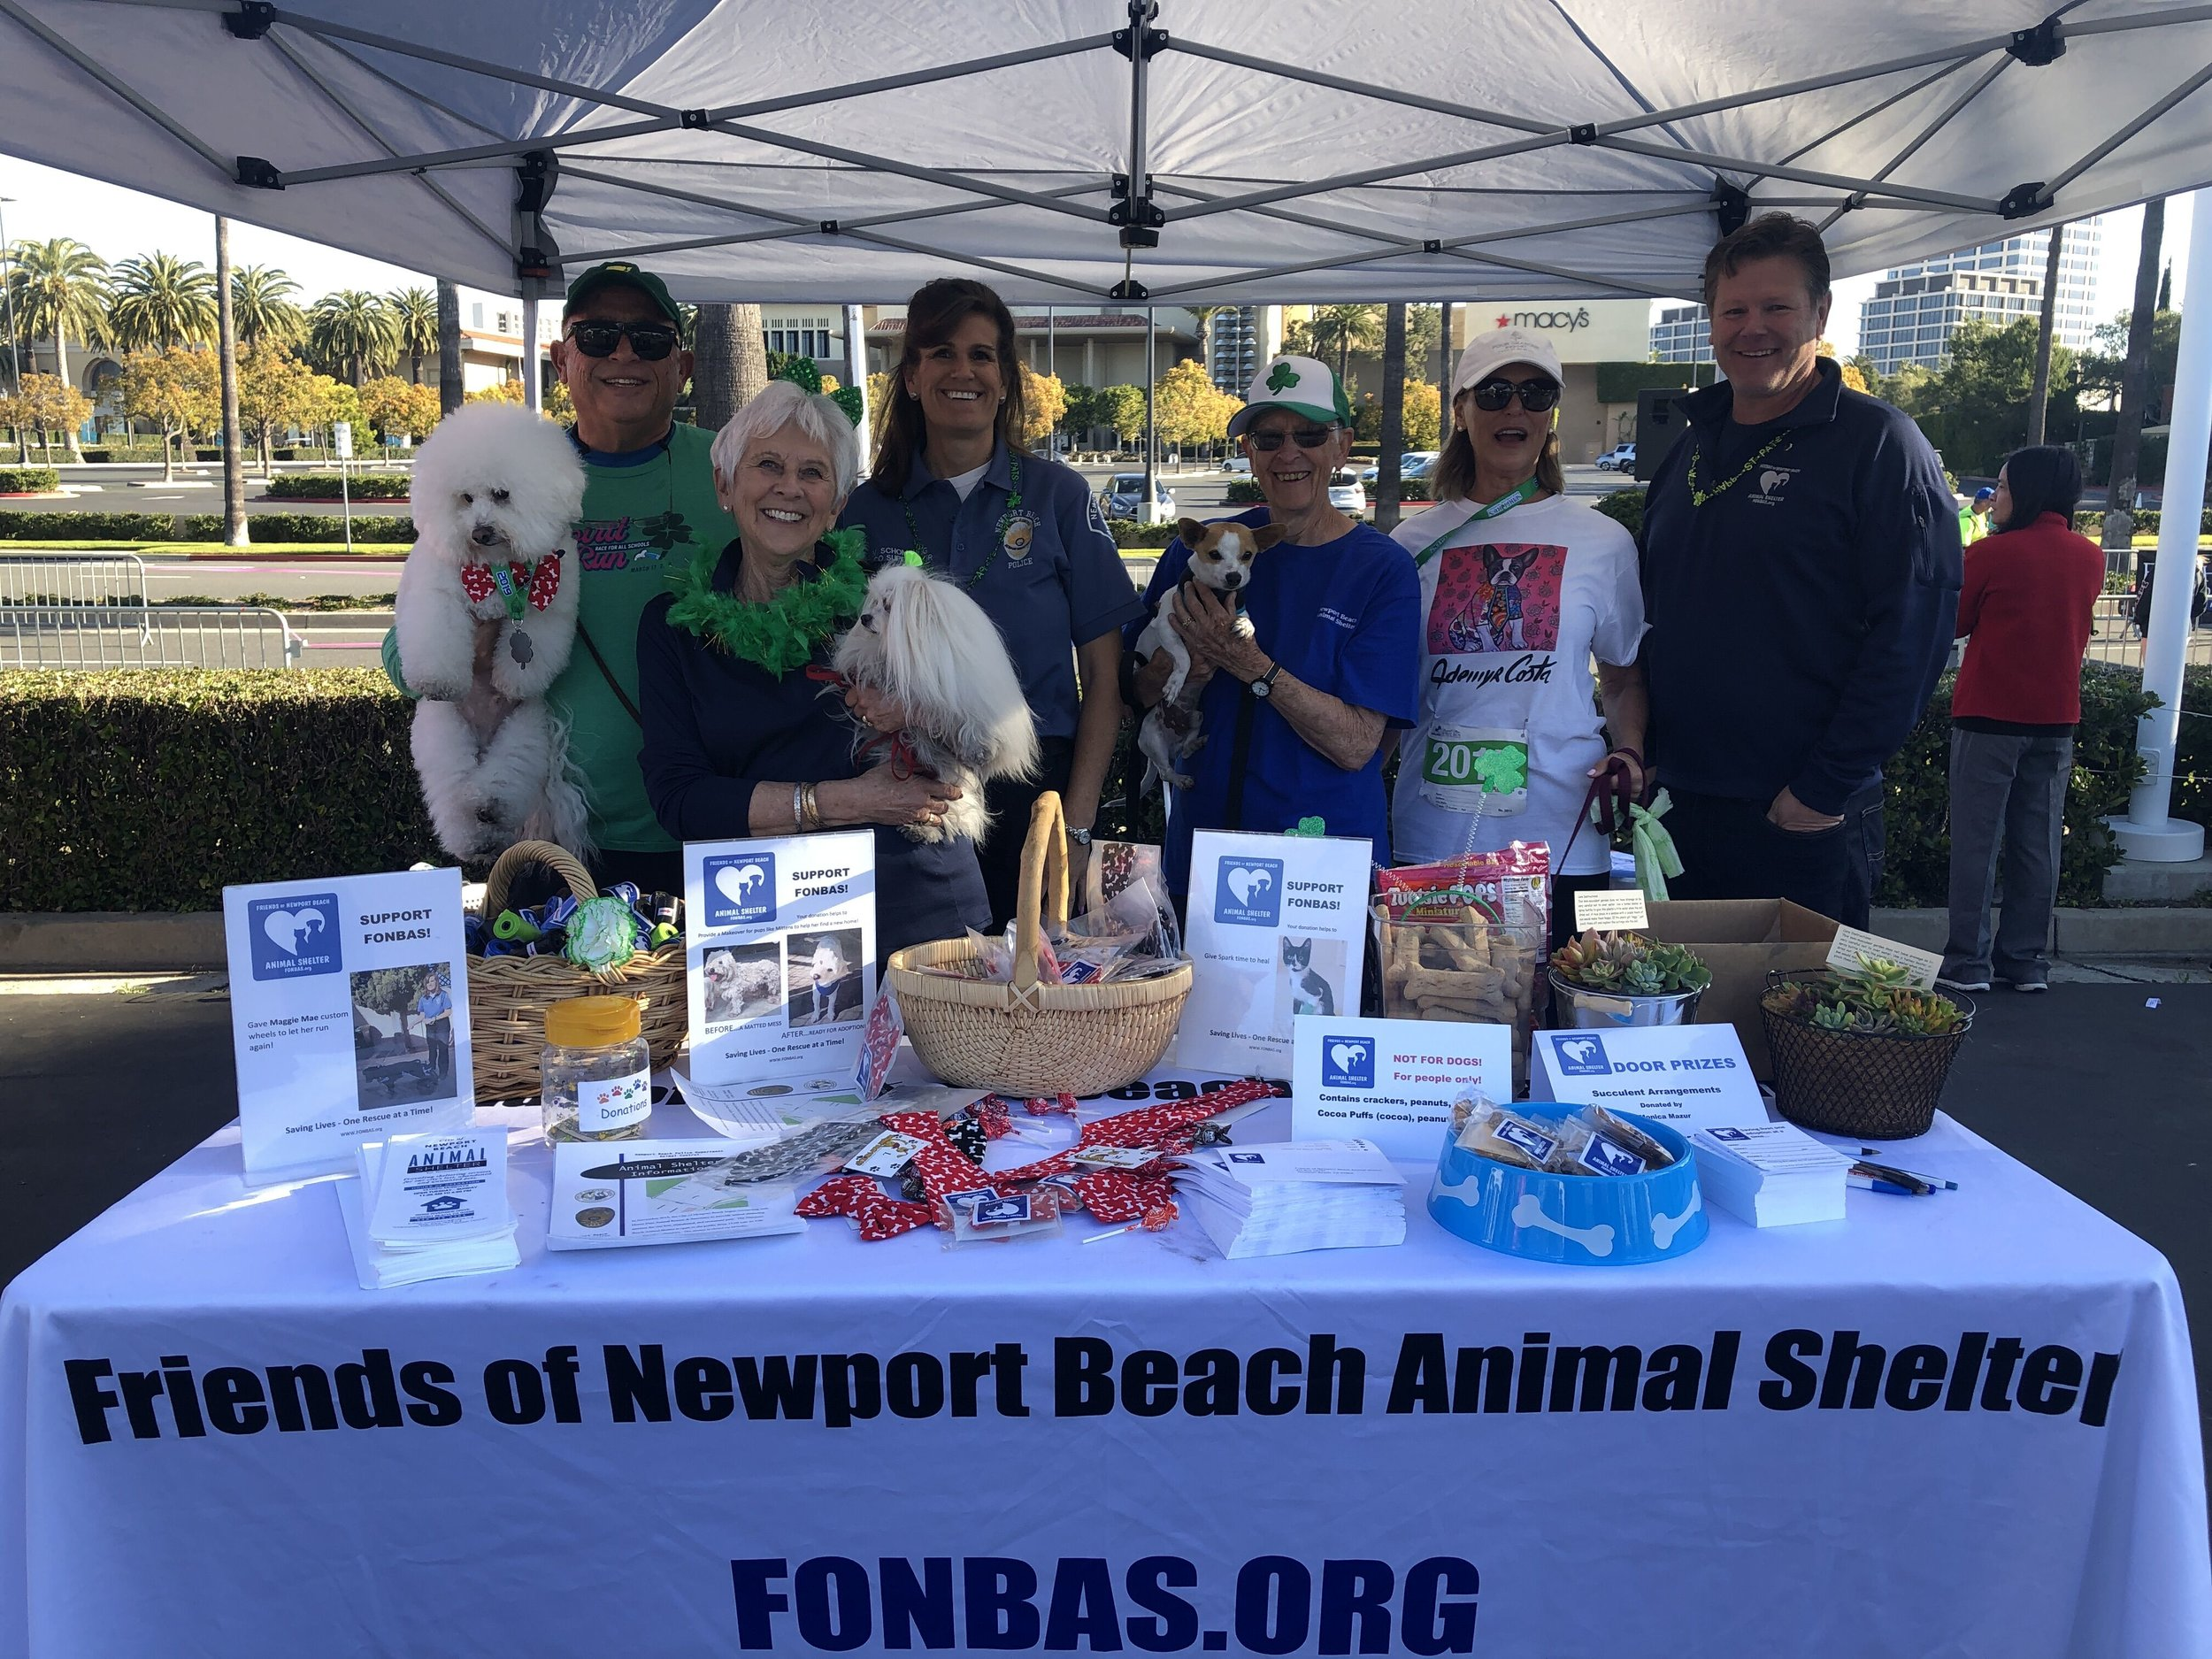 friends of newport beach anicmal shelter booth.jpeg